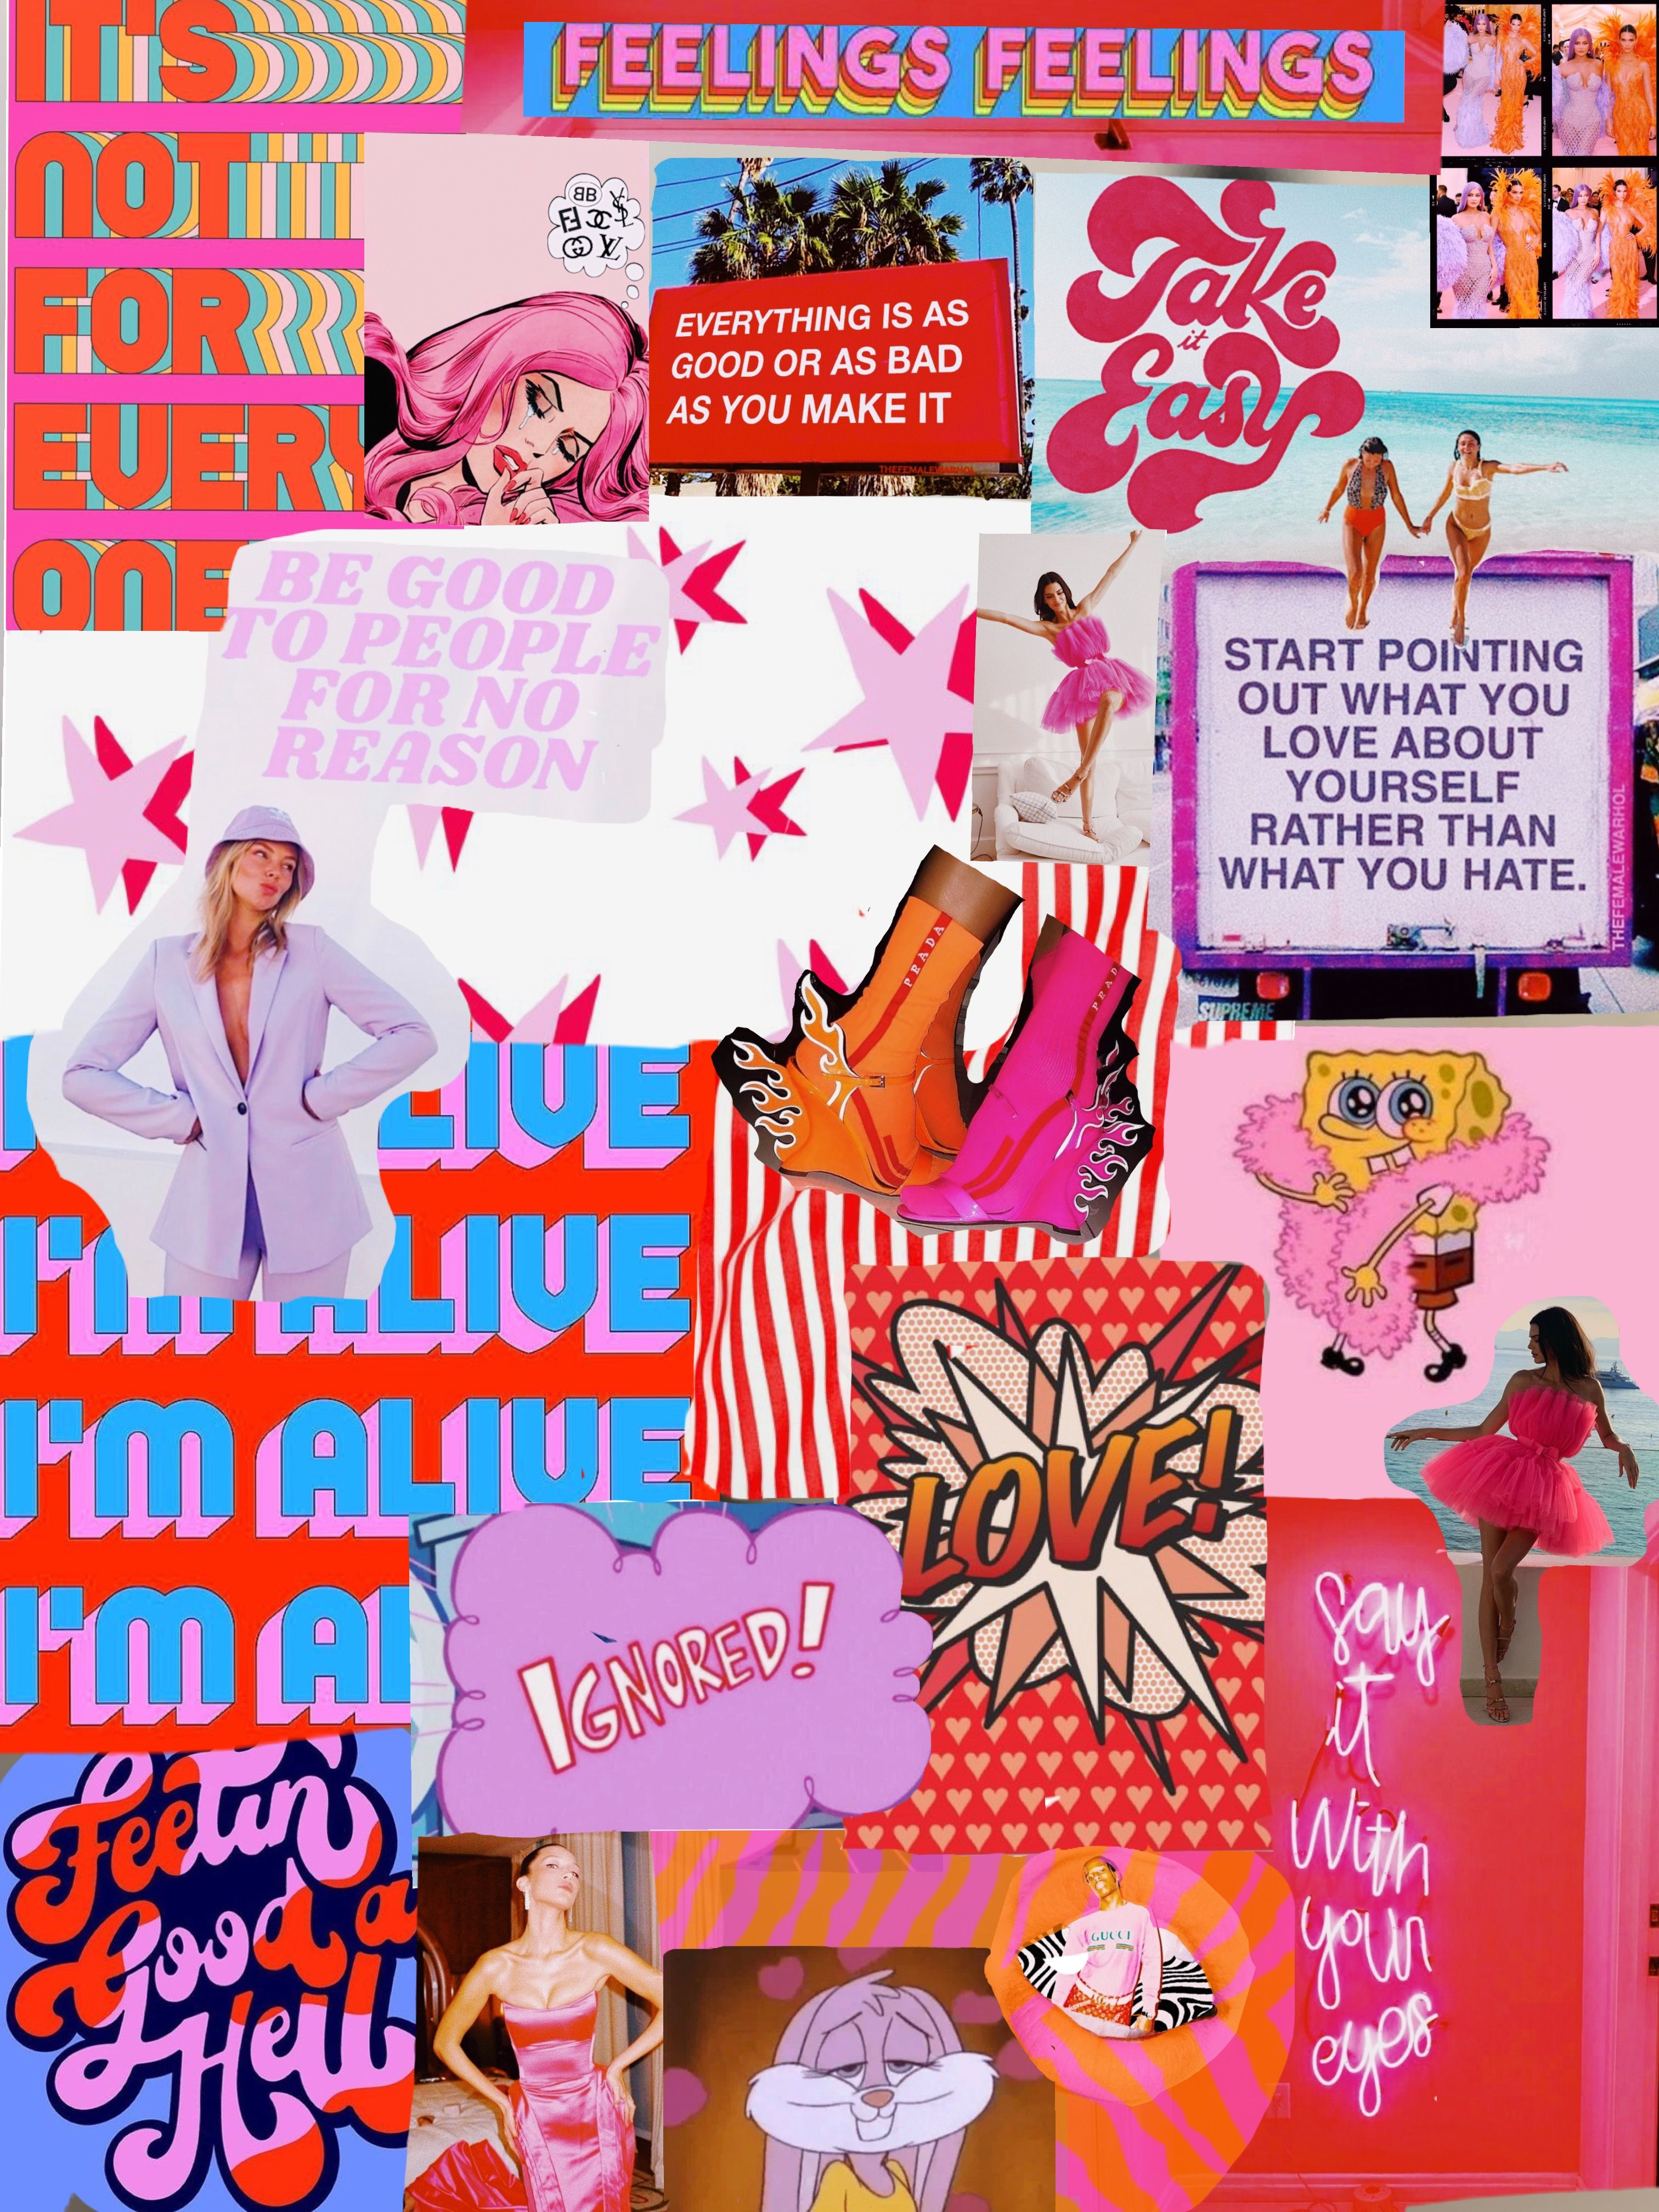 Trendy Vsco Red And Pink Collage Poster By Darcyg04 In 2020